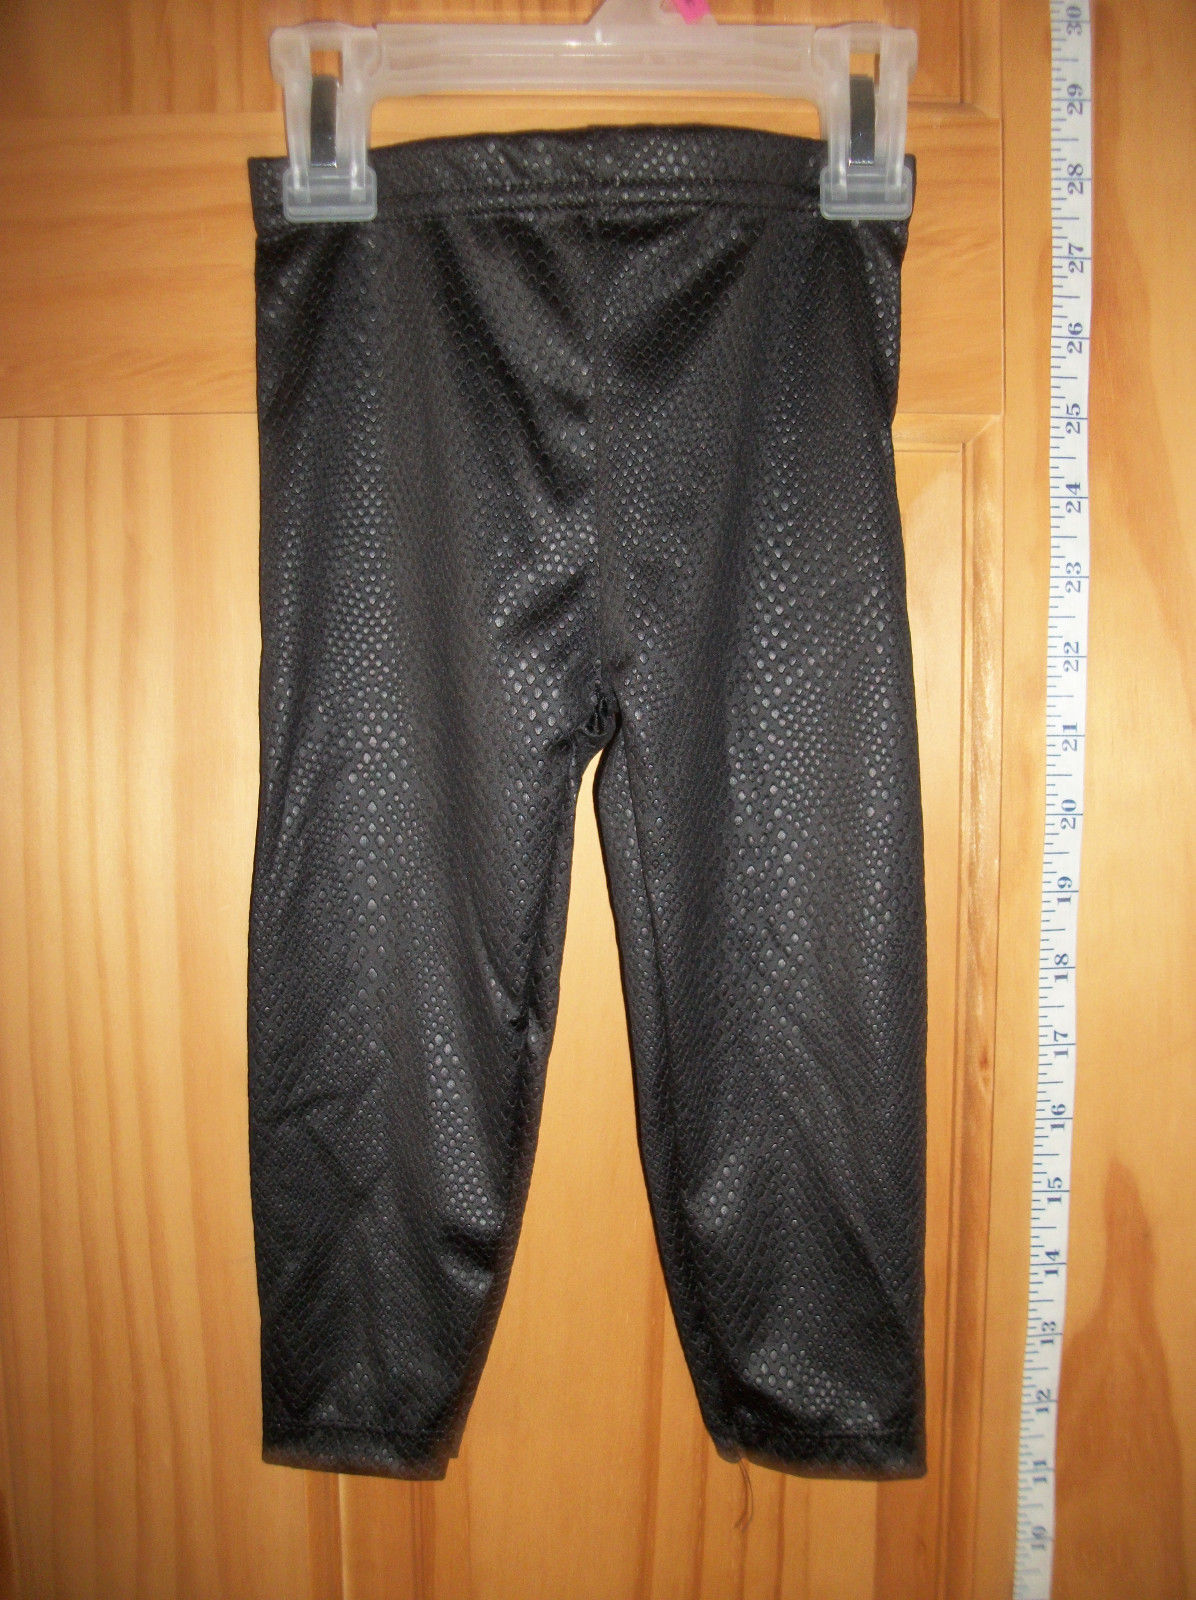 Fashion Holiday Baby Clothes 18M Infant Pants Black Embossed Halloween Leggings - Bottoms